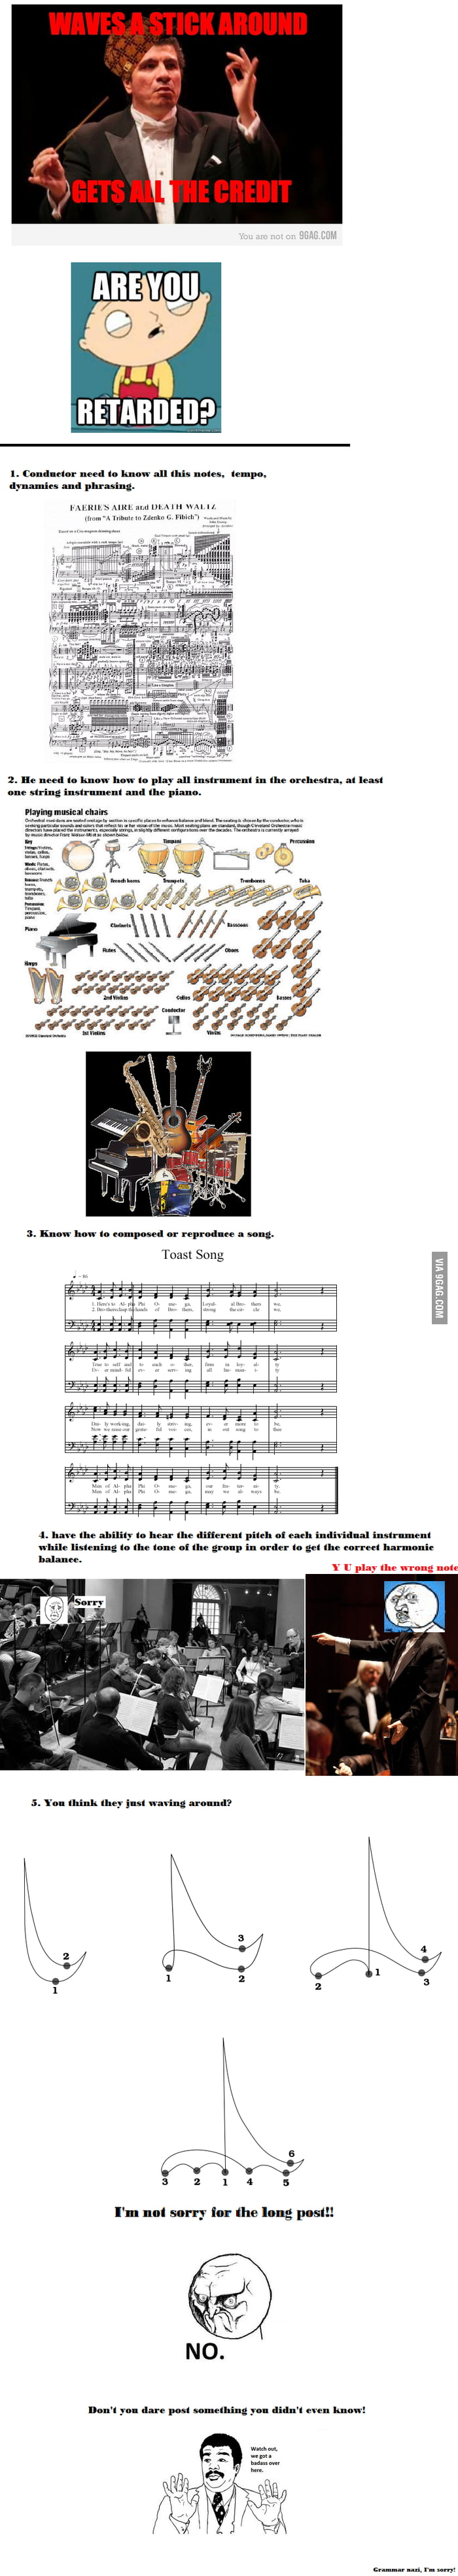 Scumbag Conductor? are you sure?